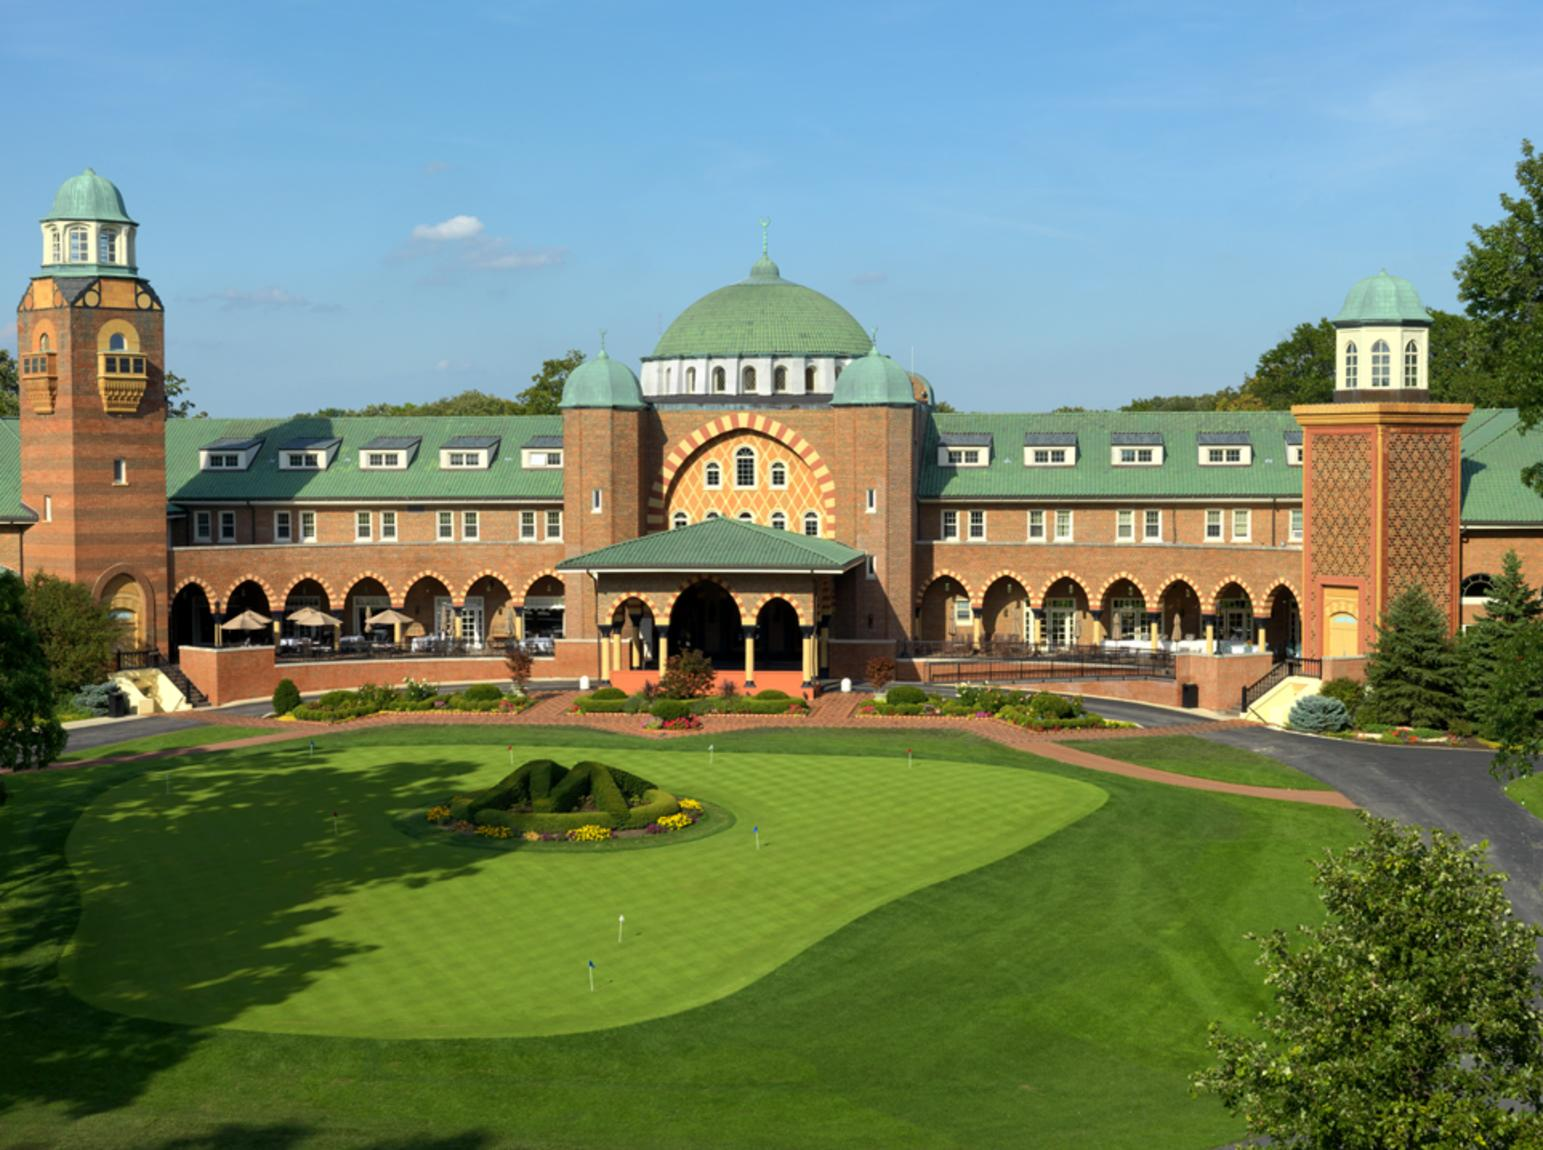 Medinah Country Club & Golf Course in Dupage County